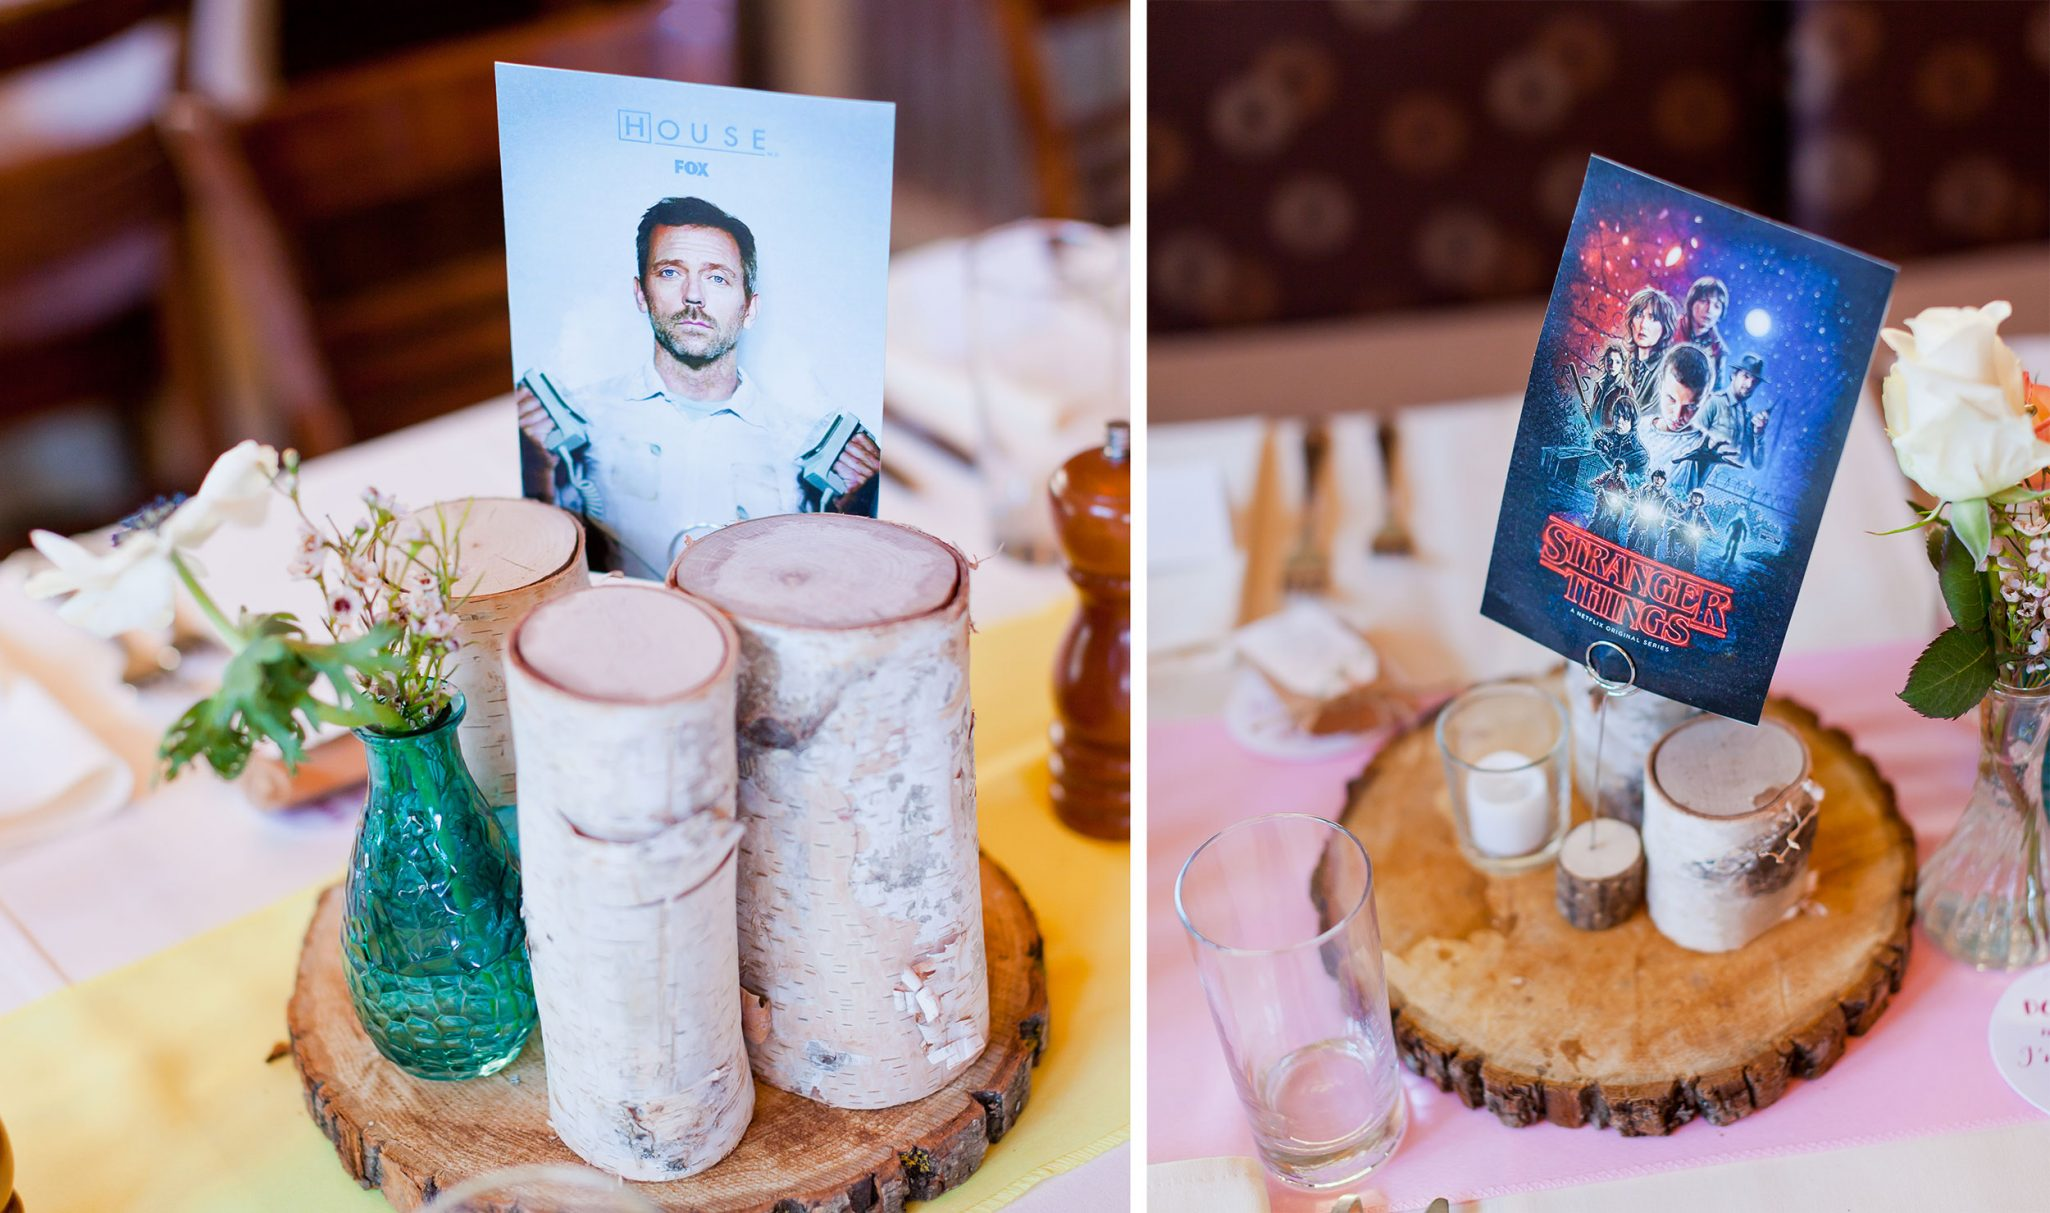 Tables named after fave TV shows